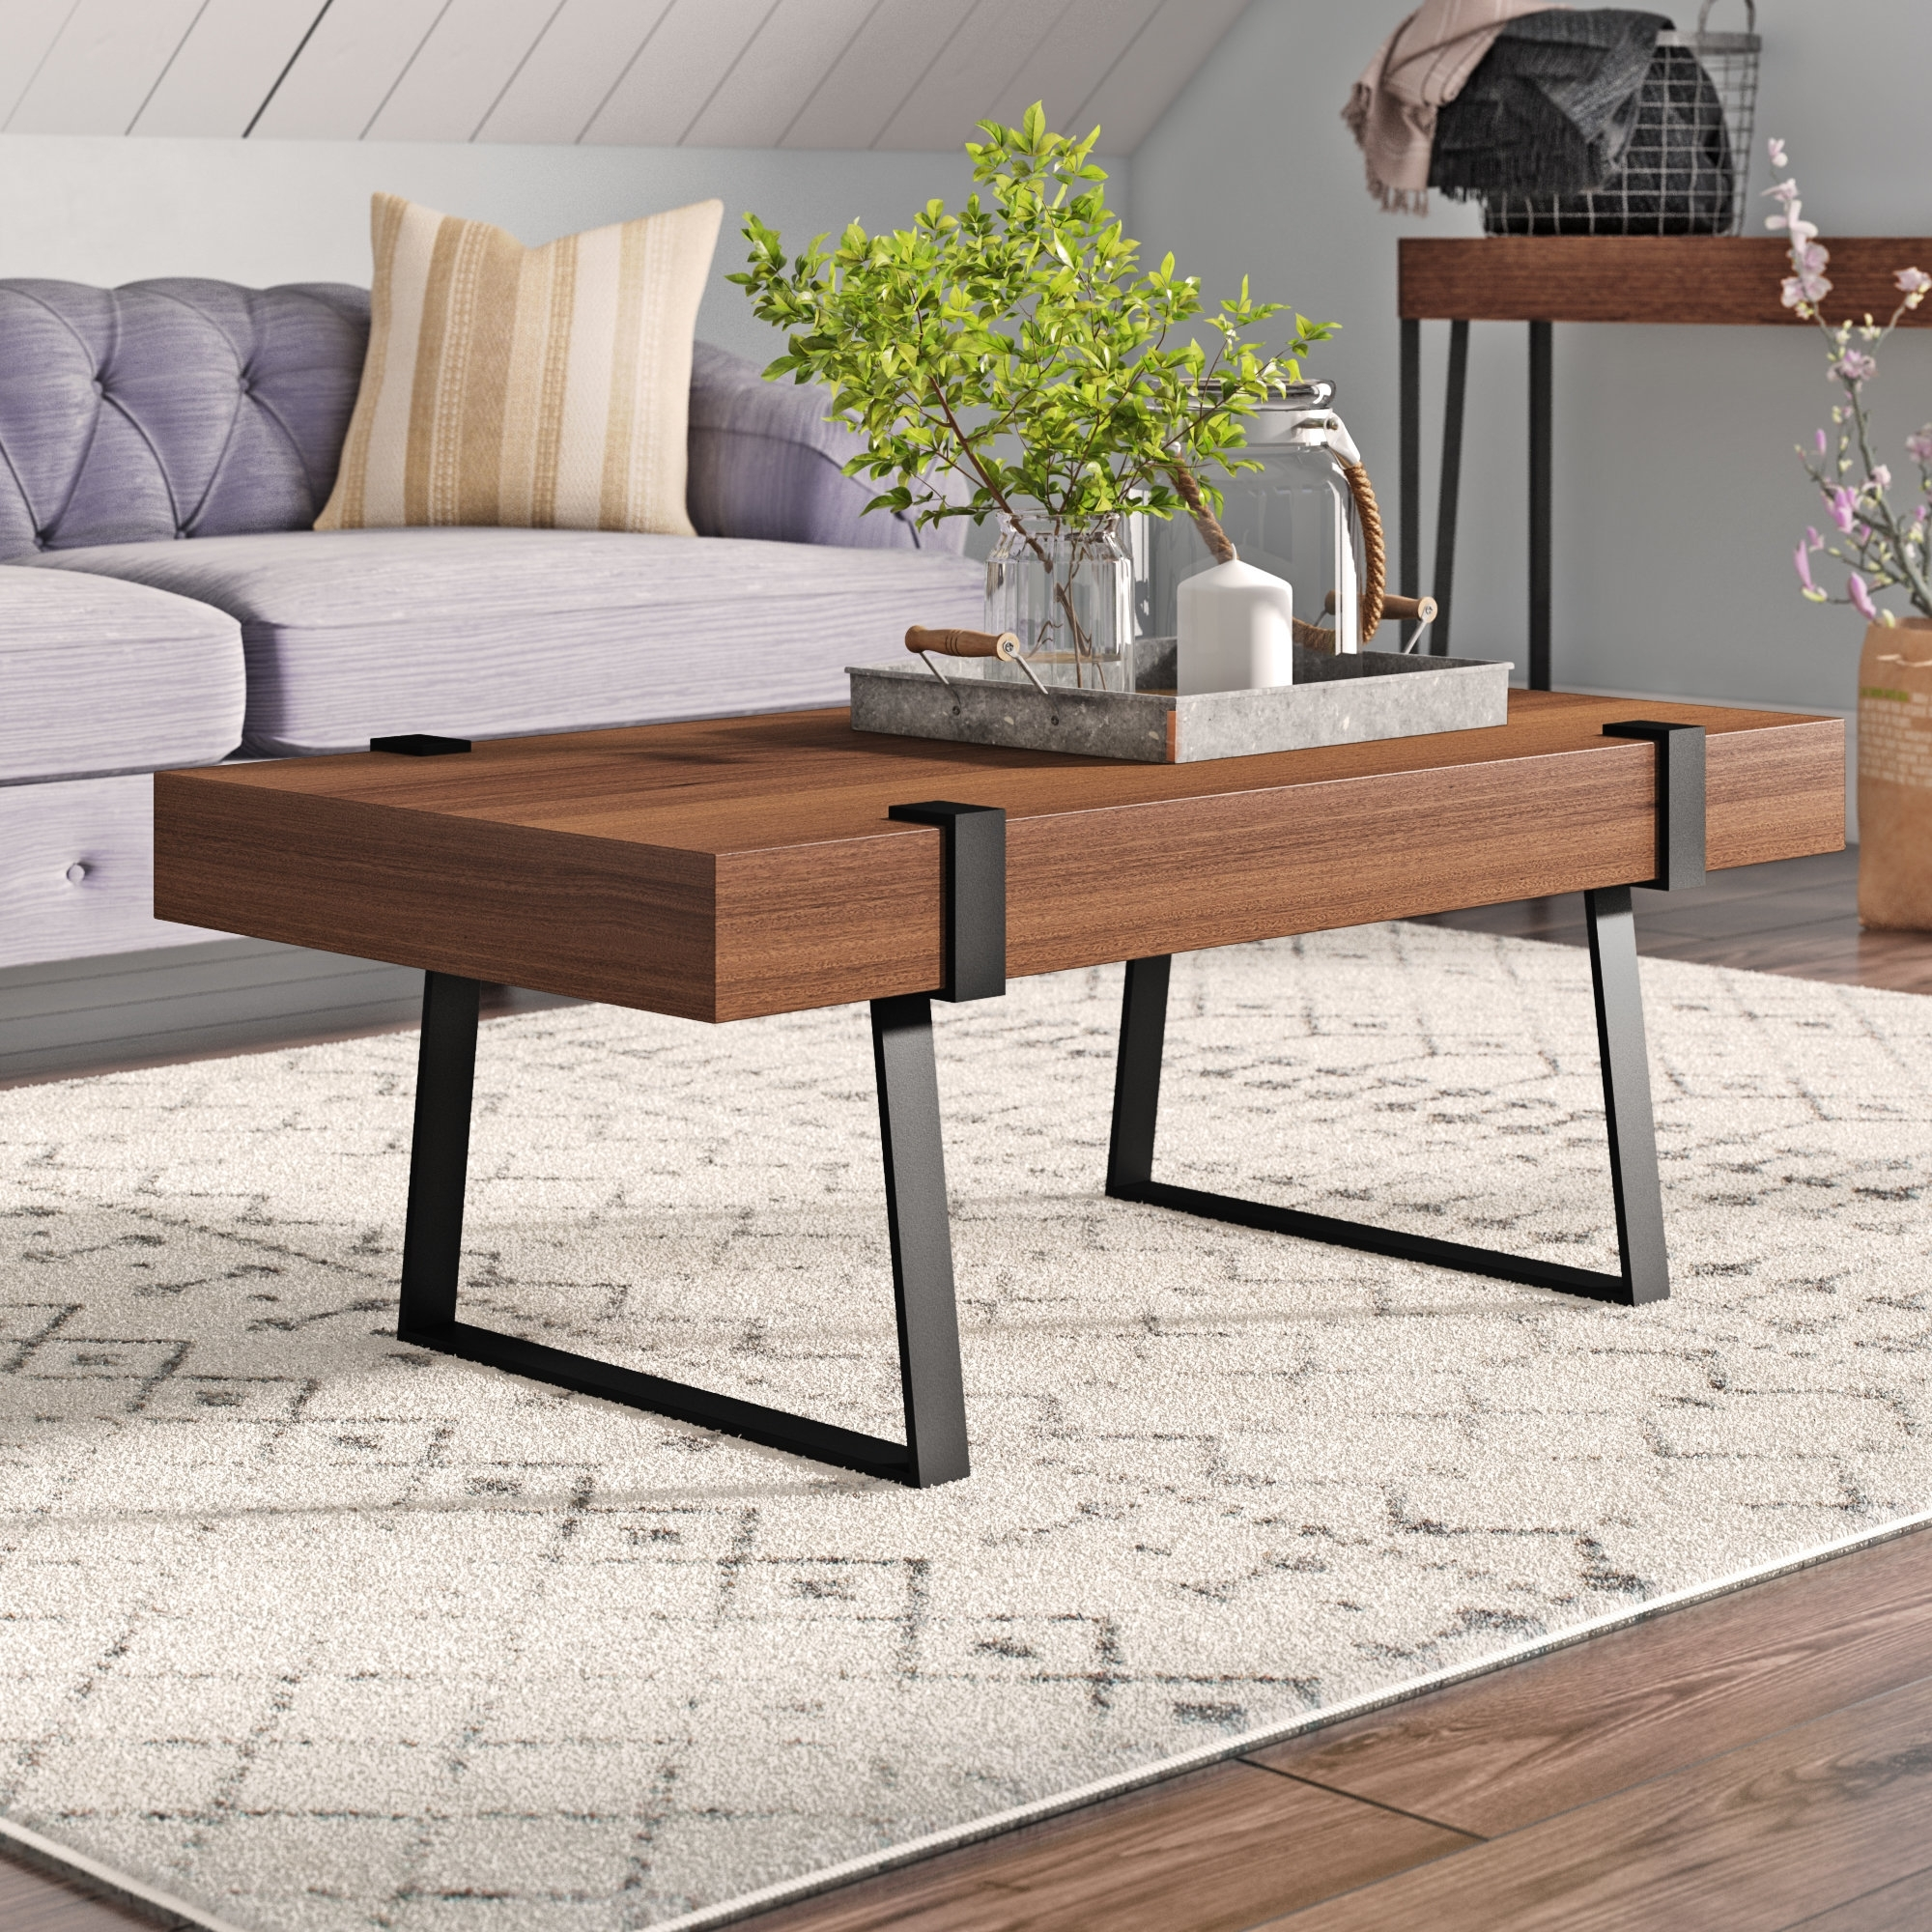 Laurel Foundry Modern Farmhouse Wisteria Indoor Coffee Table in Expressionist Coffee Tables (Image 18 of 30)